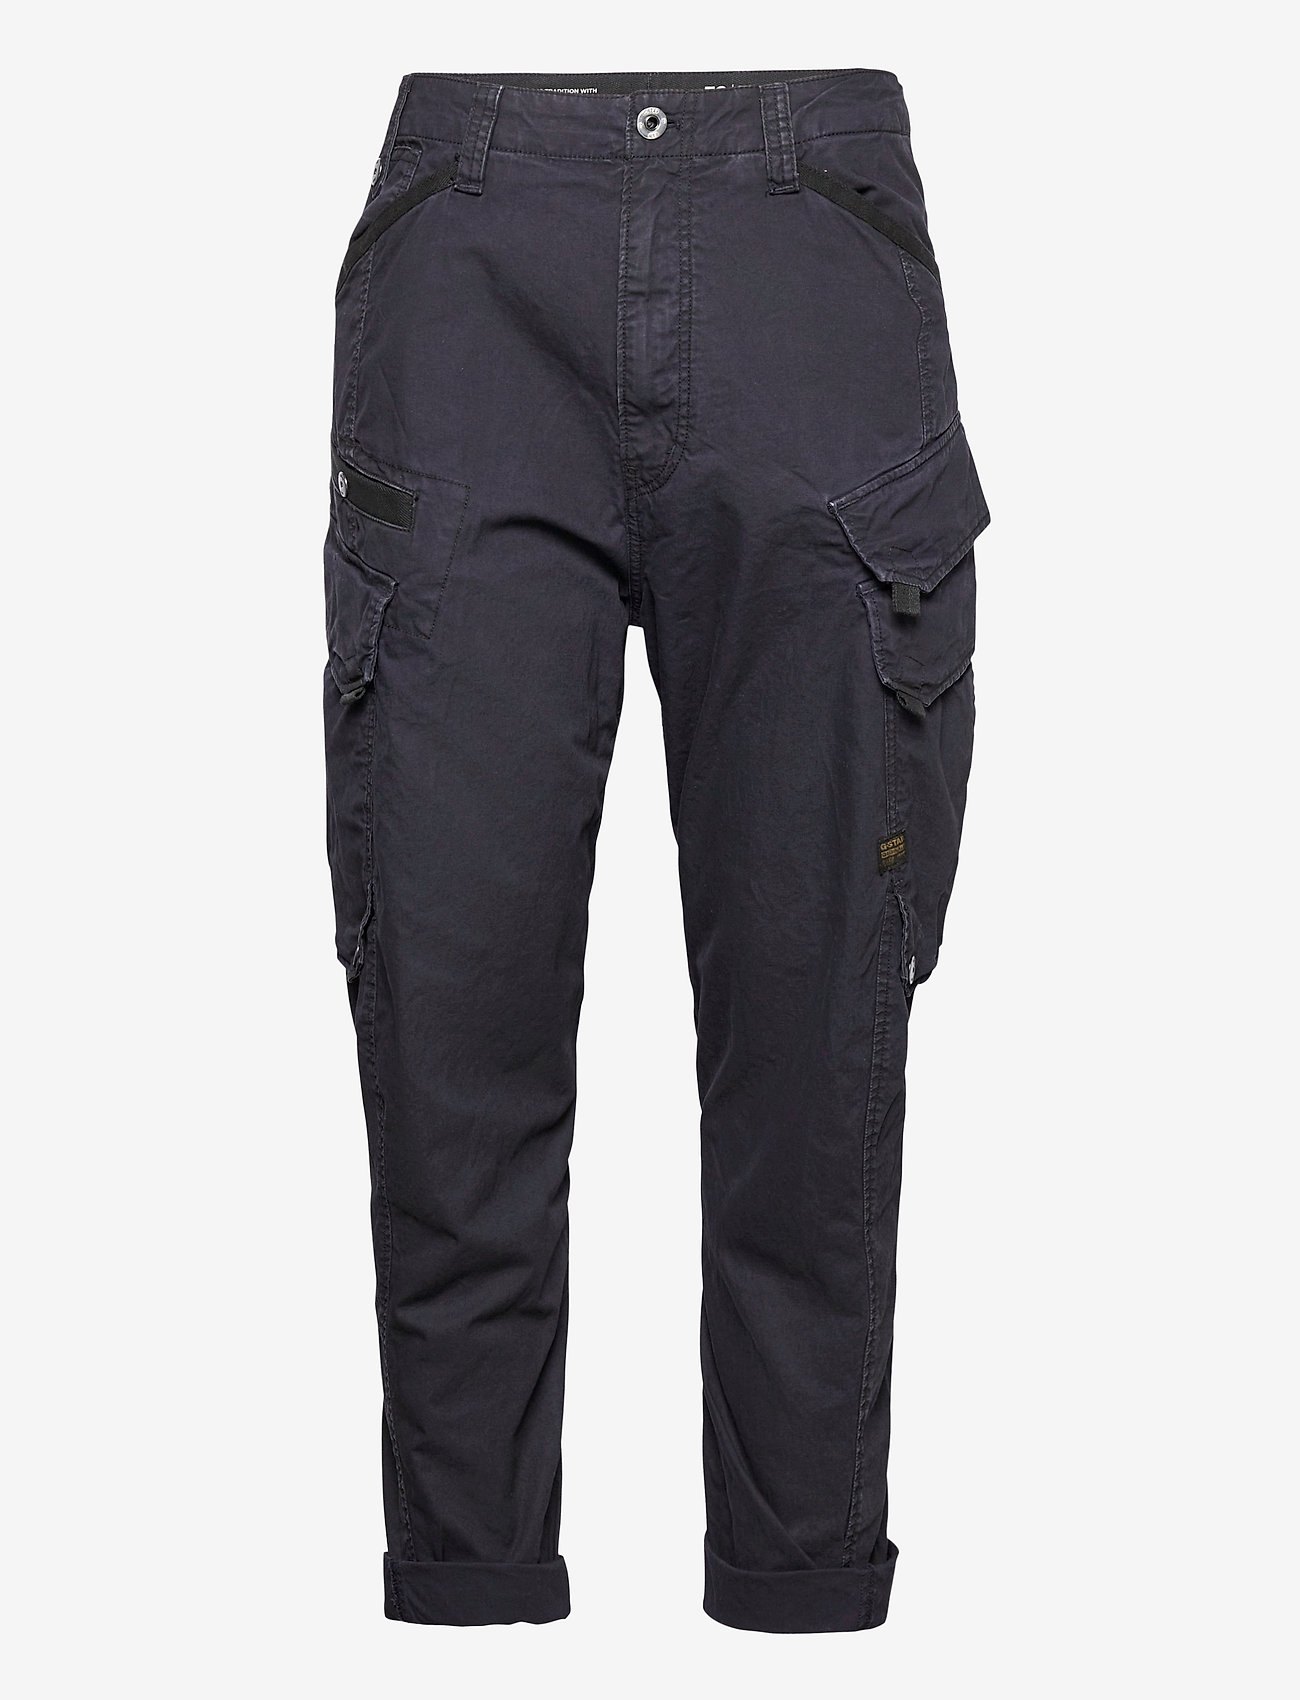 G-star RAW - Droner relaxed tapered cargo pant - cargobukser - sartho blue wave dyed - 0